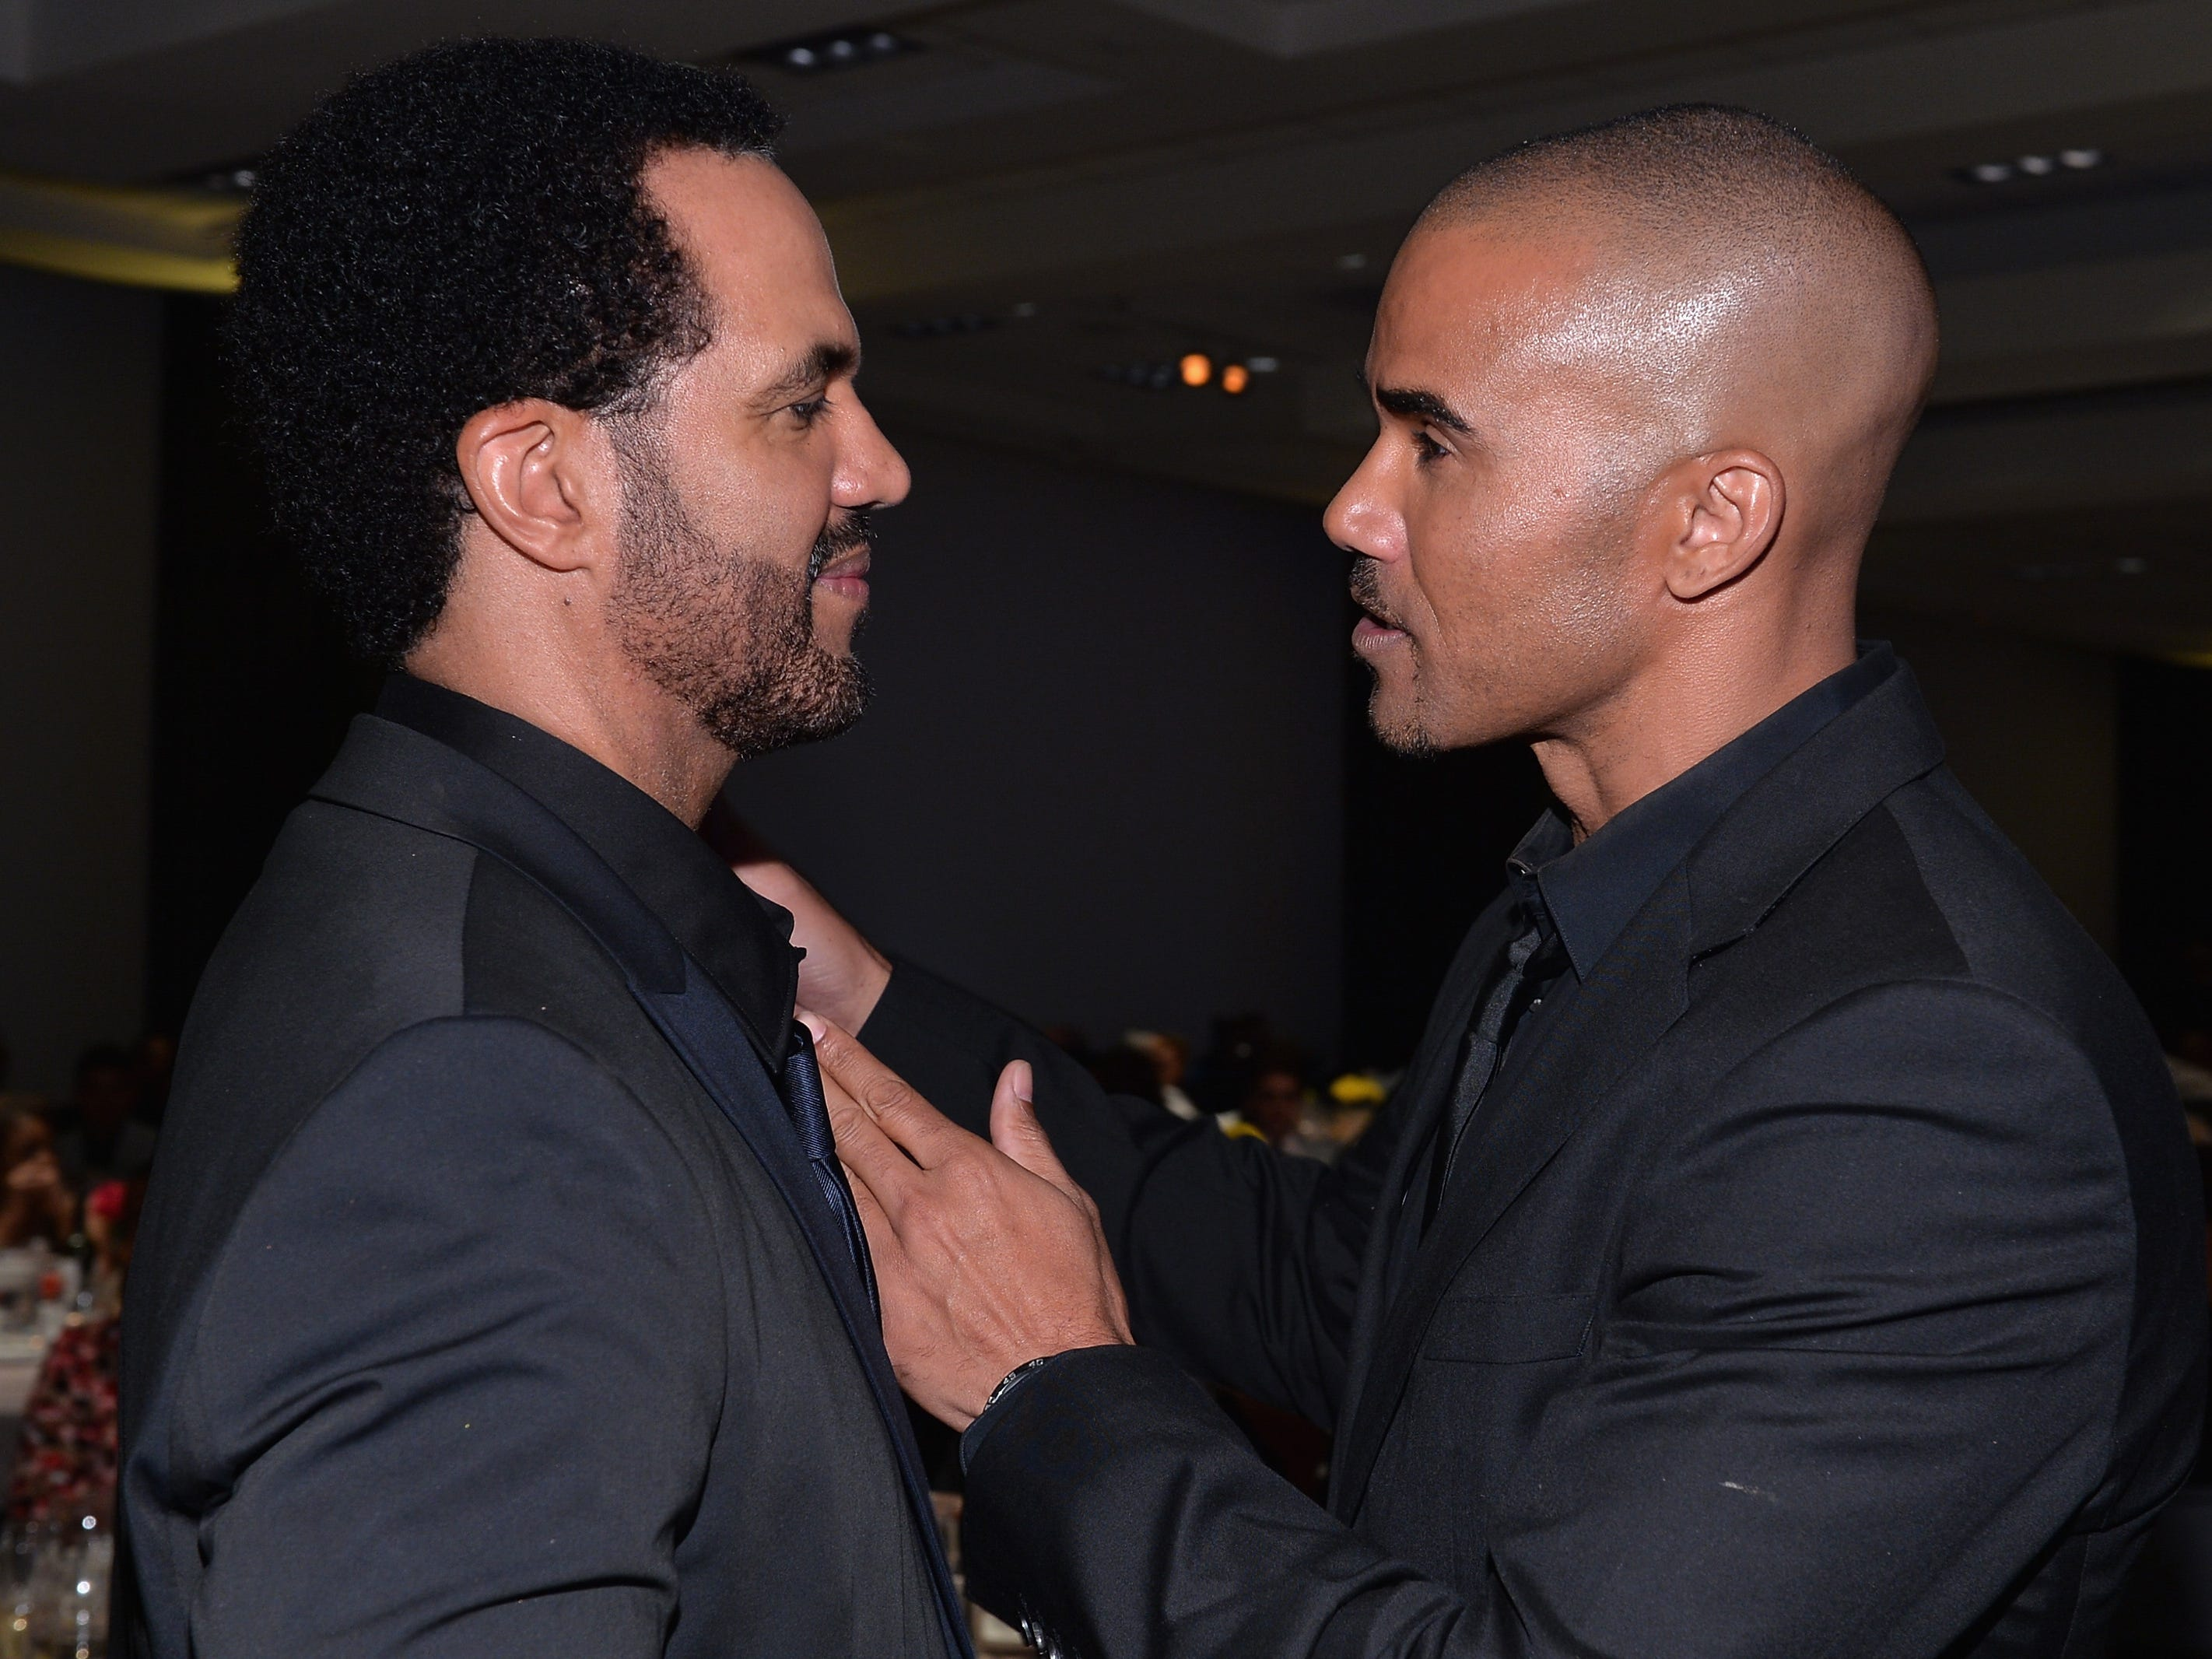 Kristoff St. John and Shemar Moore attend the 45th NAACP Awards Non-Televised Awards Ceremony, Feb. 21, Pasadena, Calif.